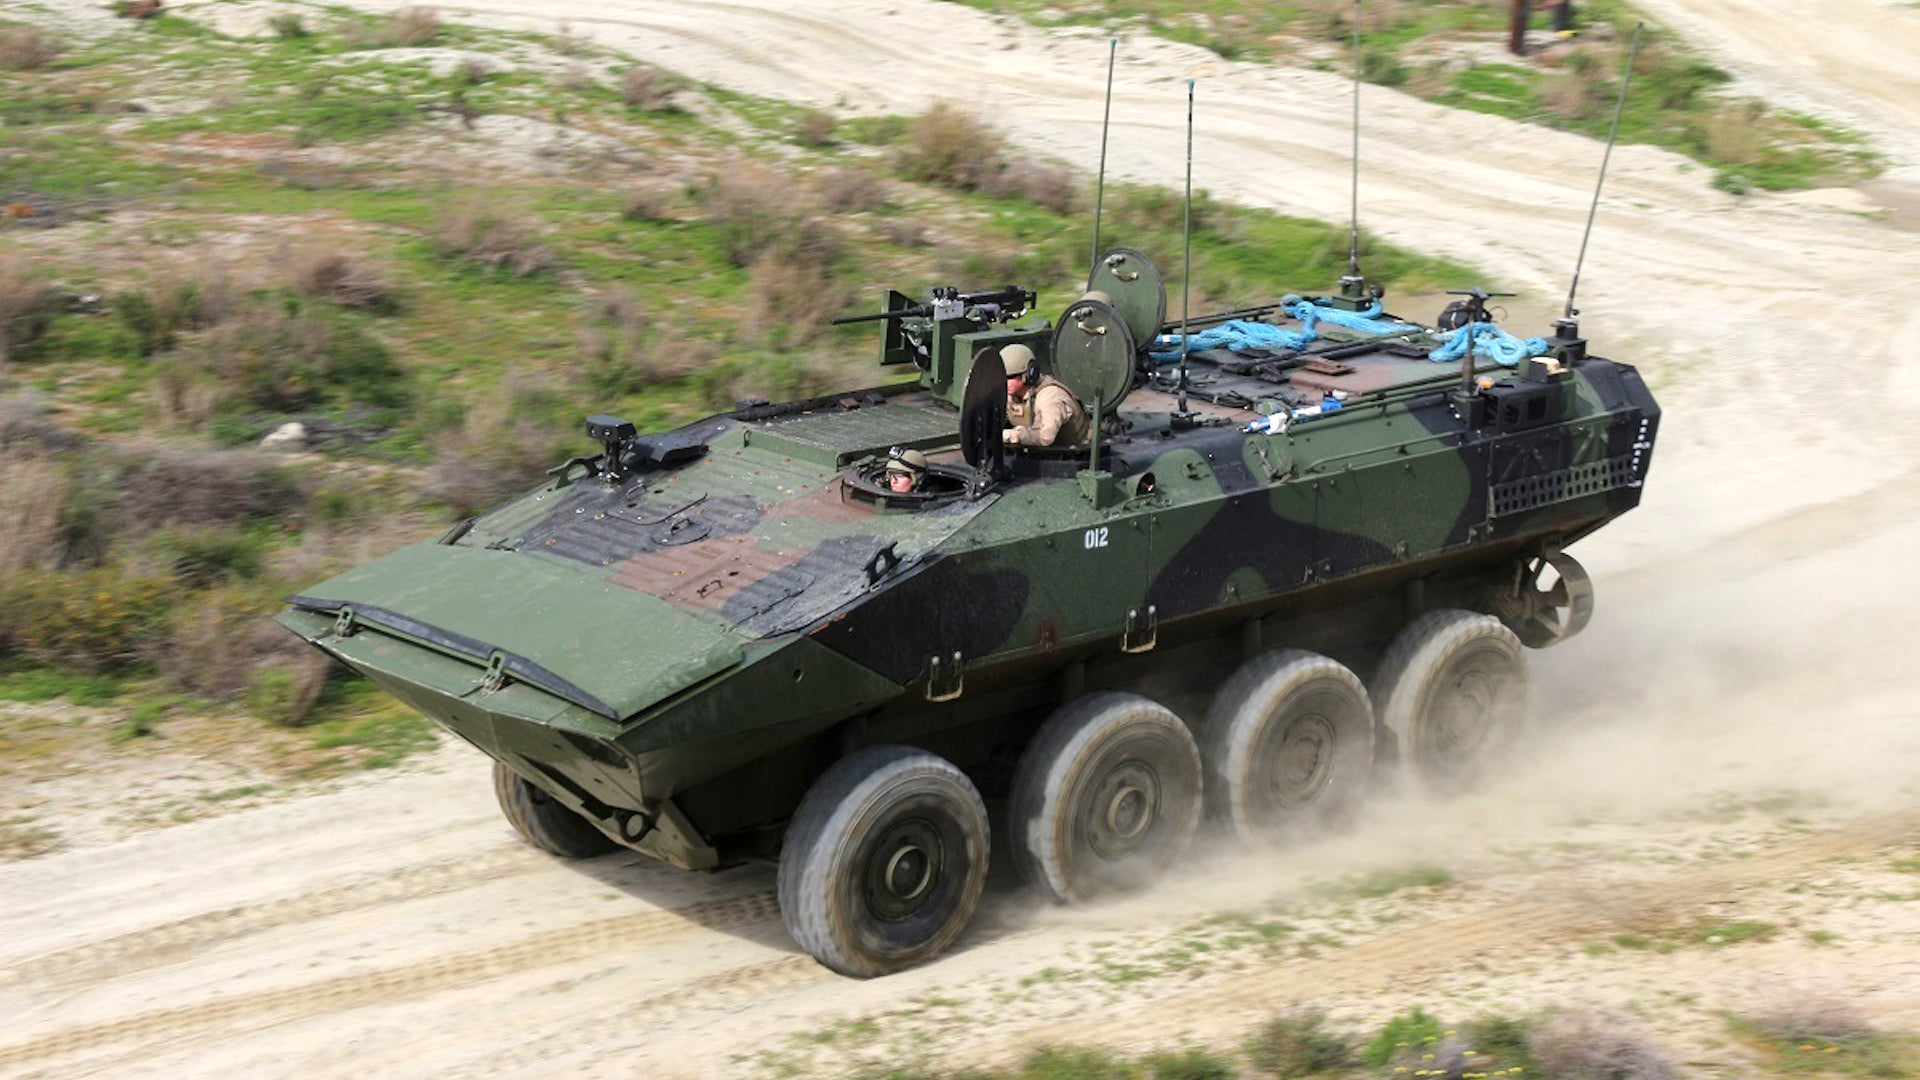 The Marine Corps is full speed ahead with its first new amphibious vehicle since the Vietnam War